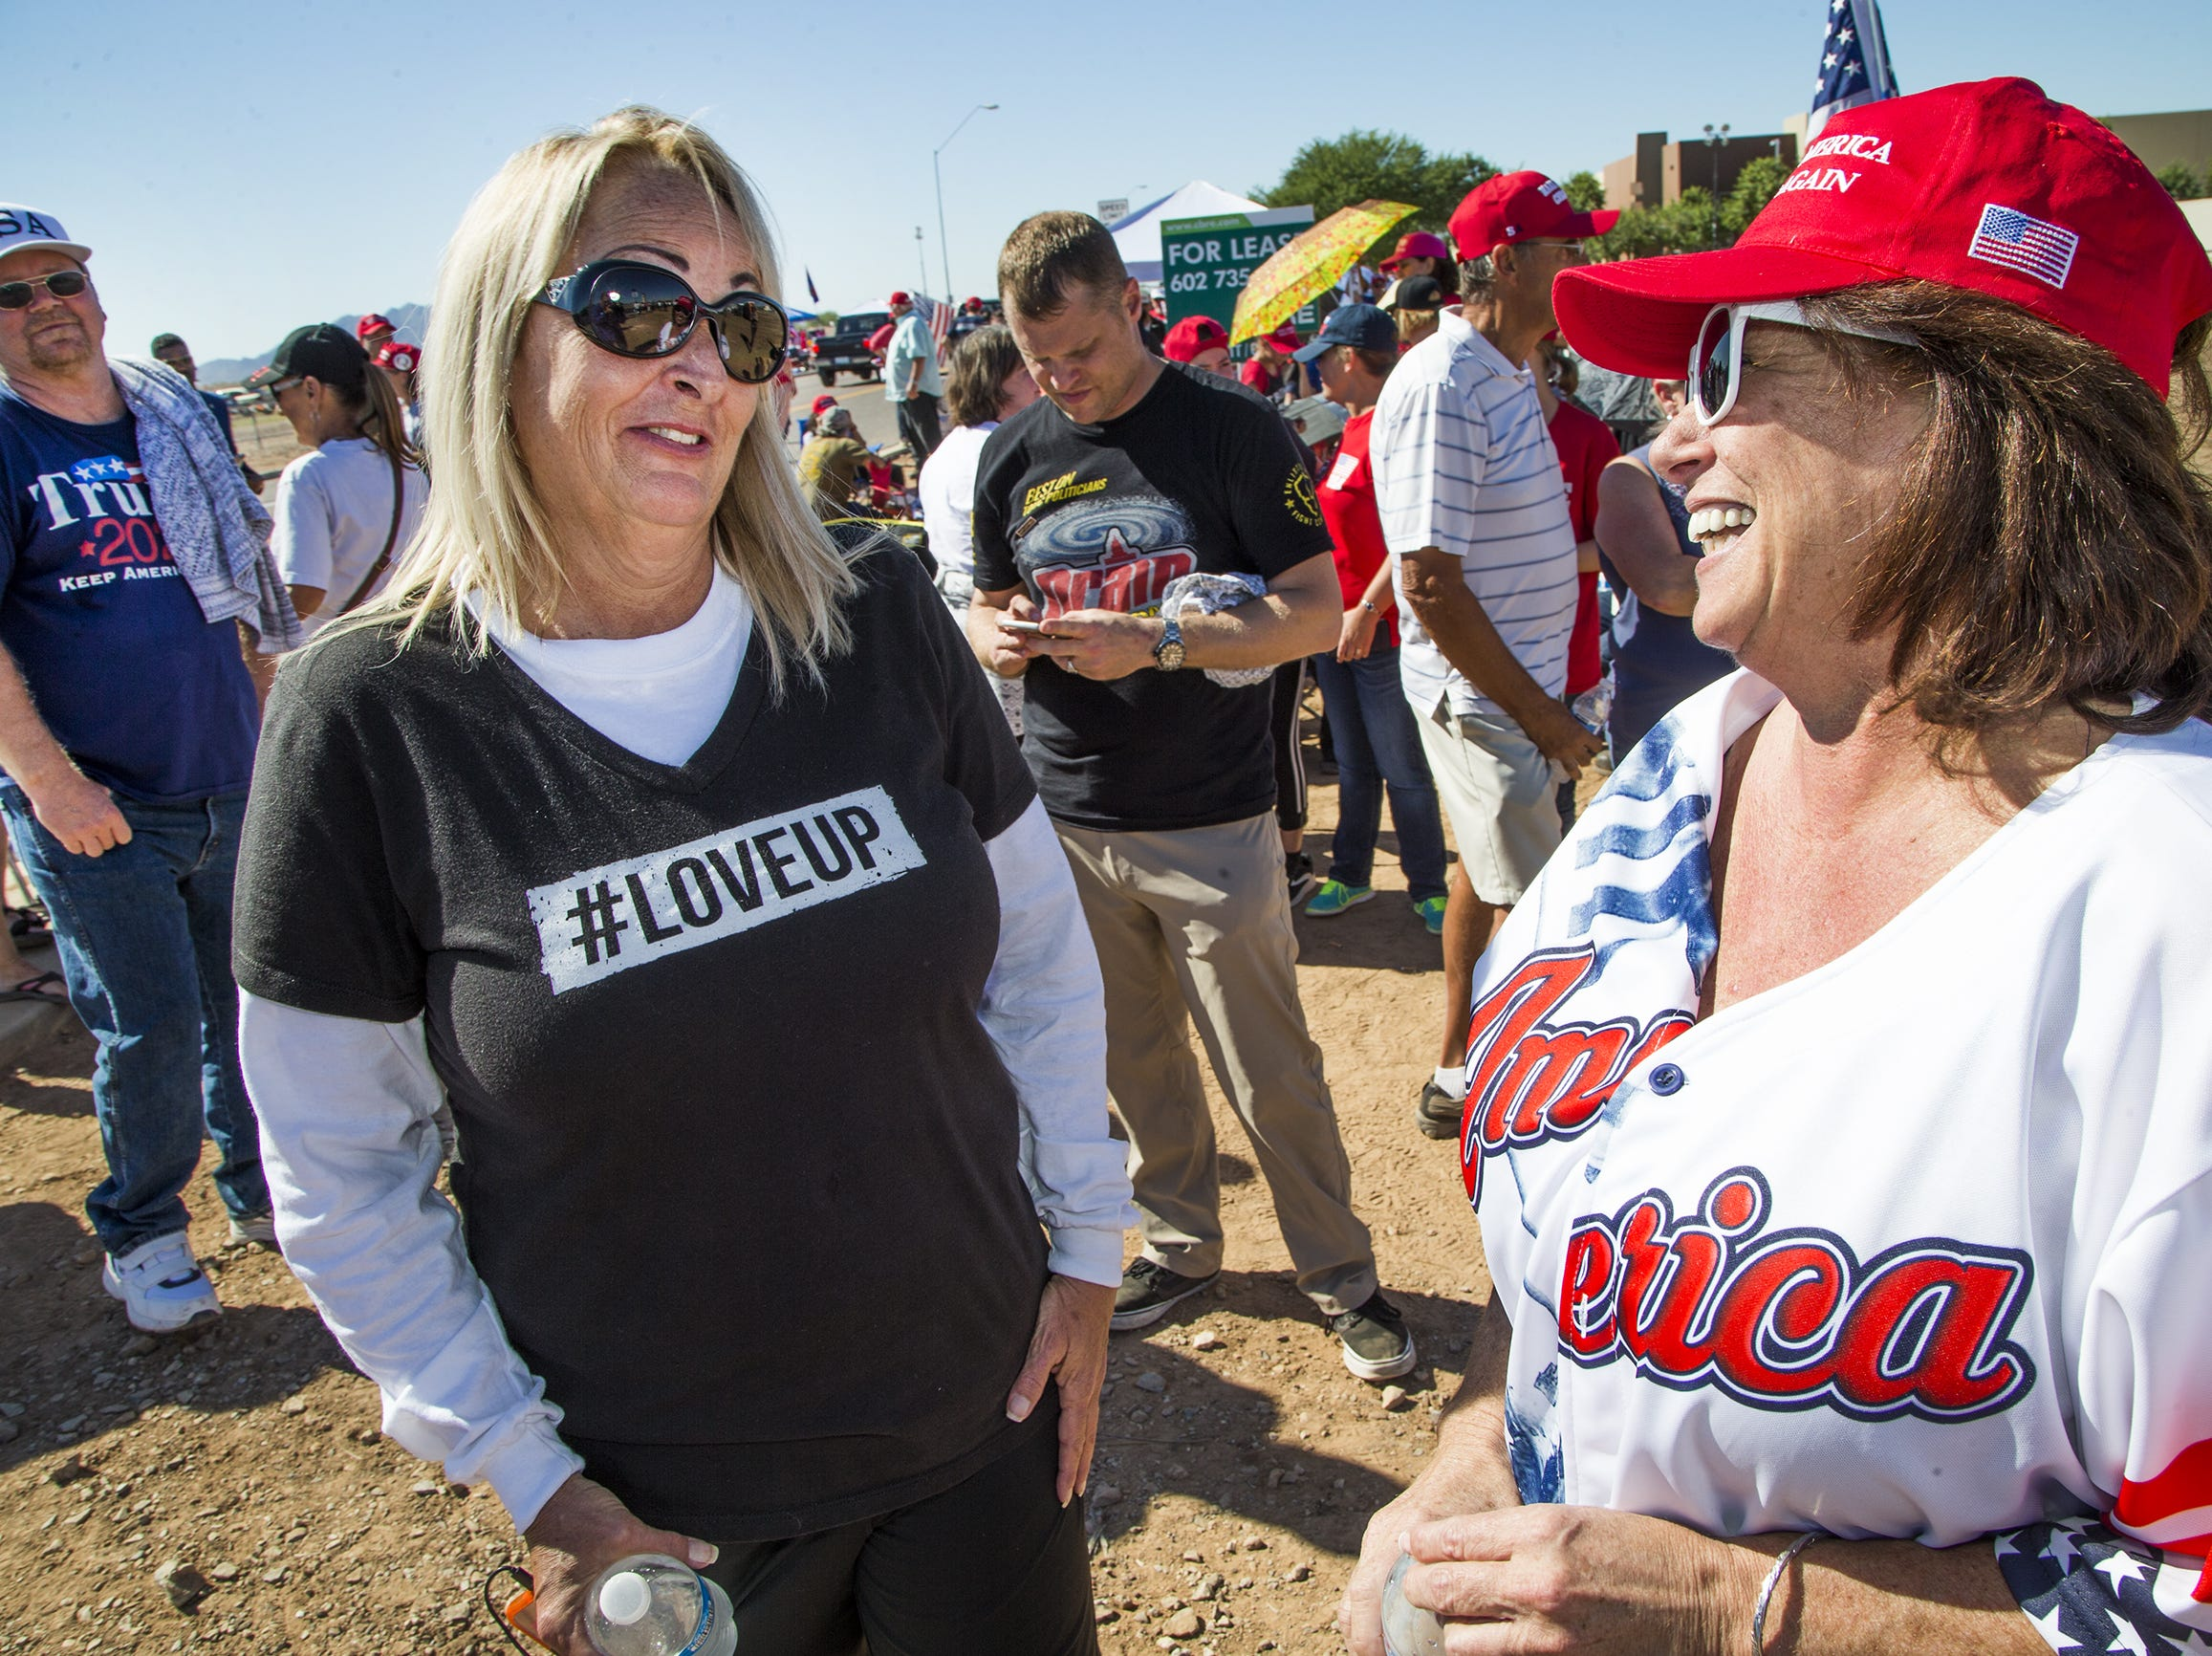 Tami Gutierrez (left) of Mesa, and Teri Lorang, of Gold Canyon, were the first two people in line to enter the International Air Response Hangar at Williams Gateway Airport on Oct. 19, 2018.